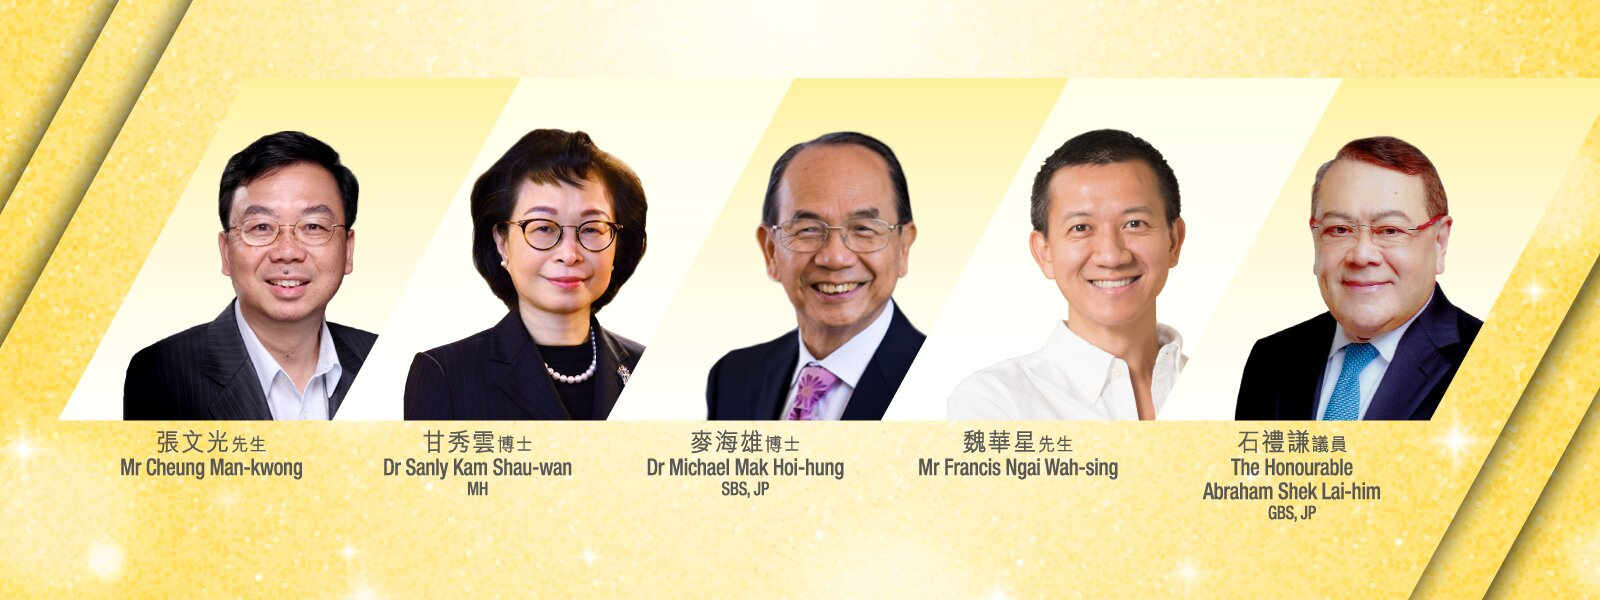 EdUHK to Present Honorary Fellowships to Five Distinguished Individuals